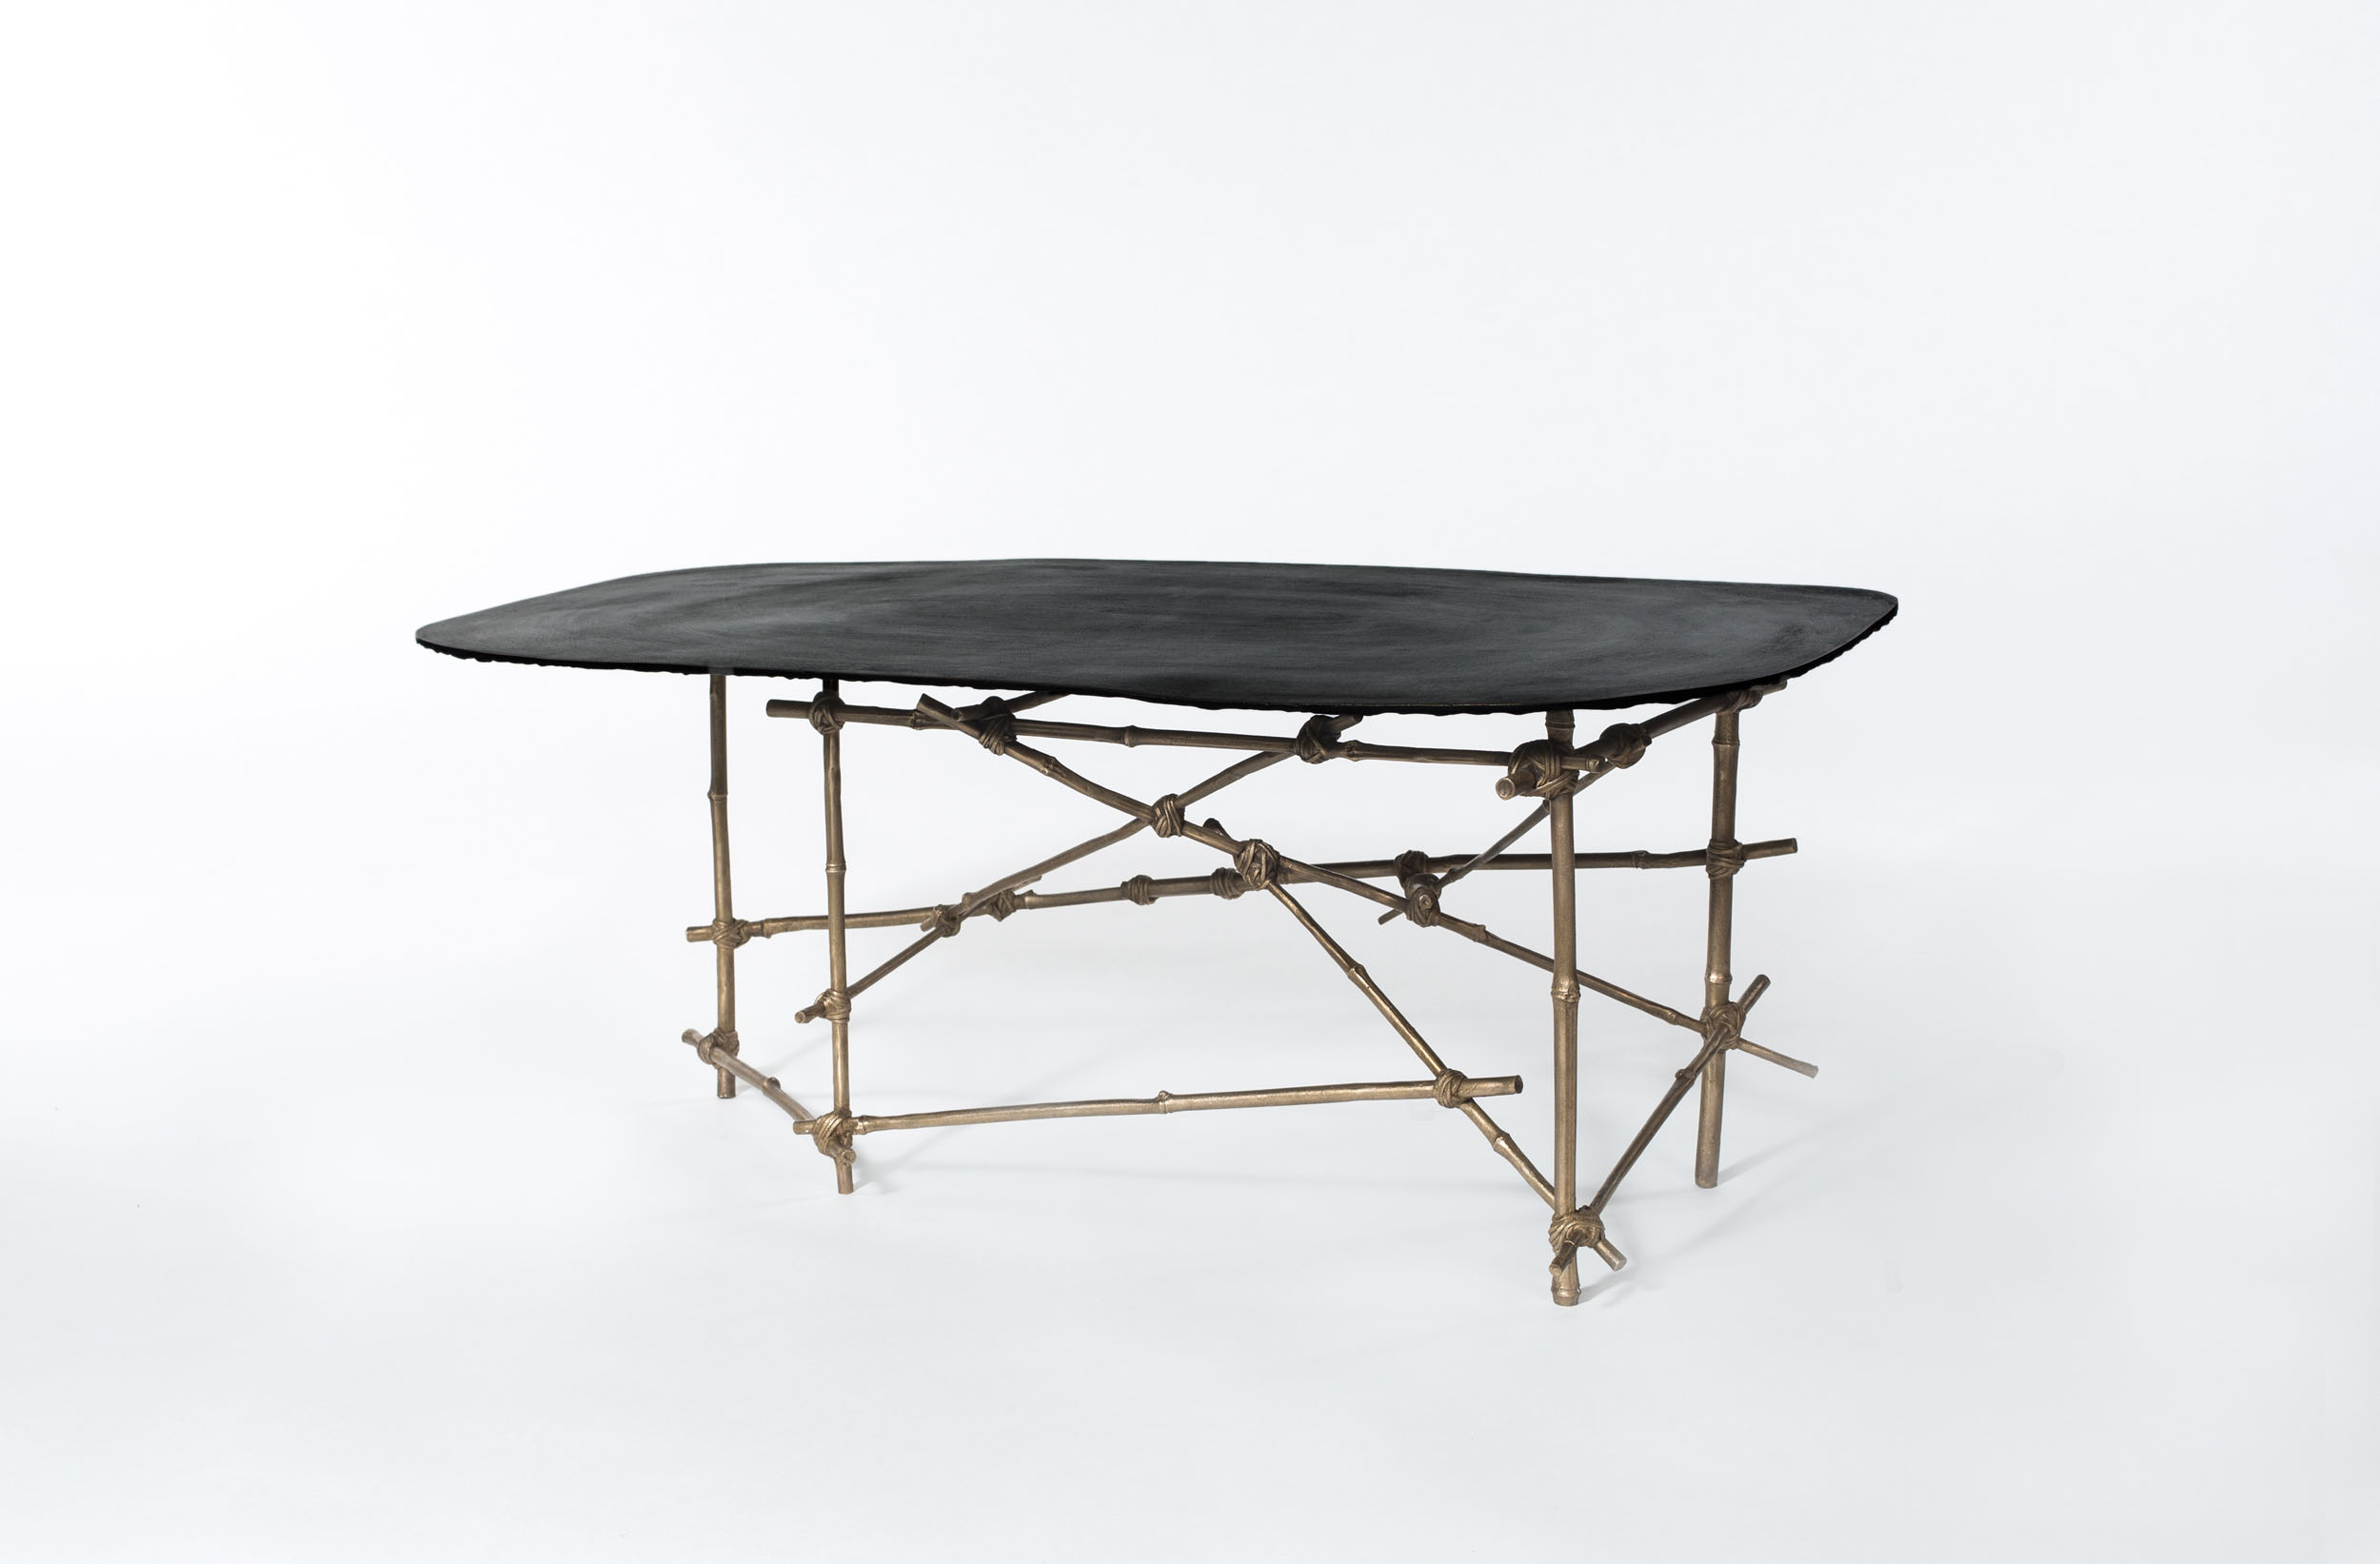 Mise en Place coffee table with bronze cast bamboo frame and patina surface